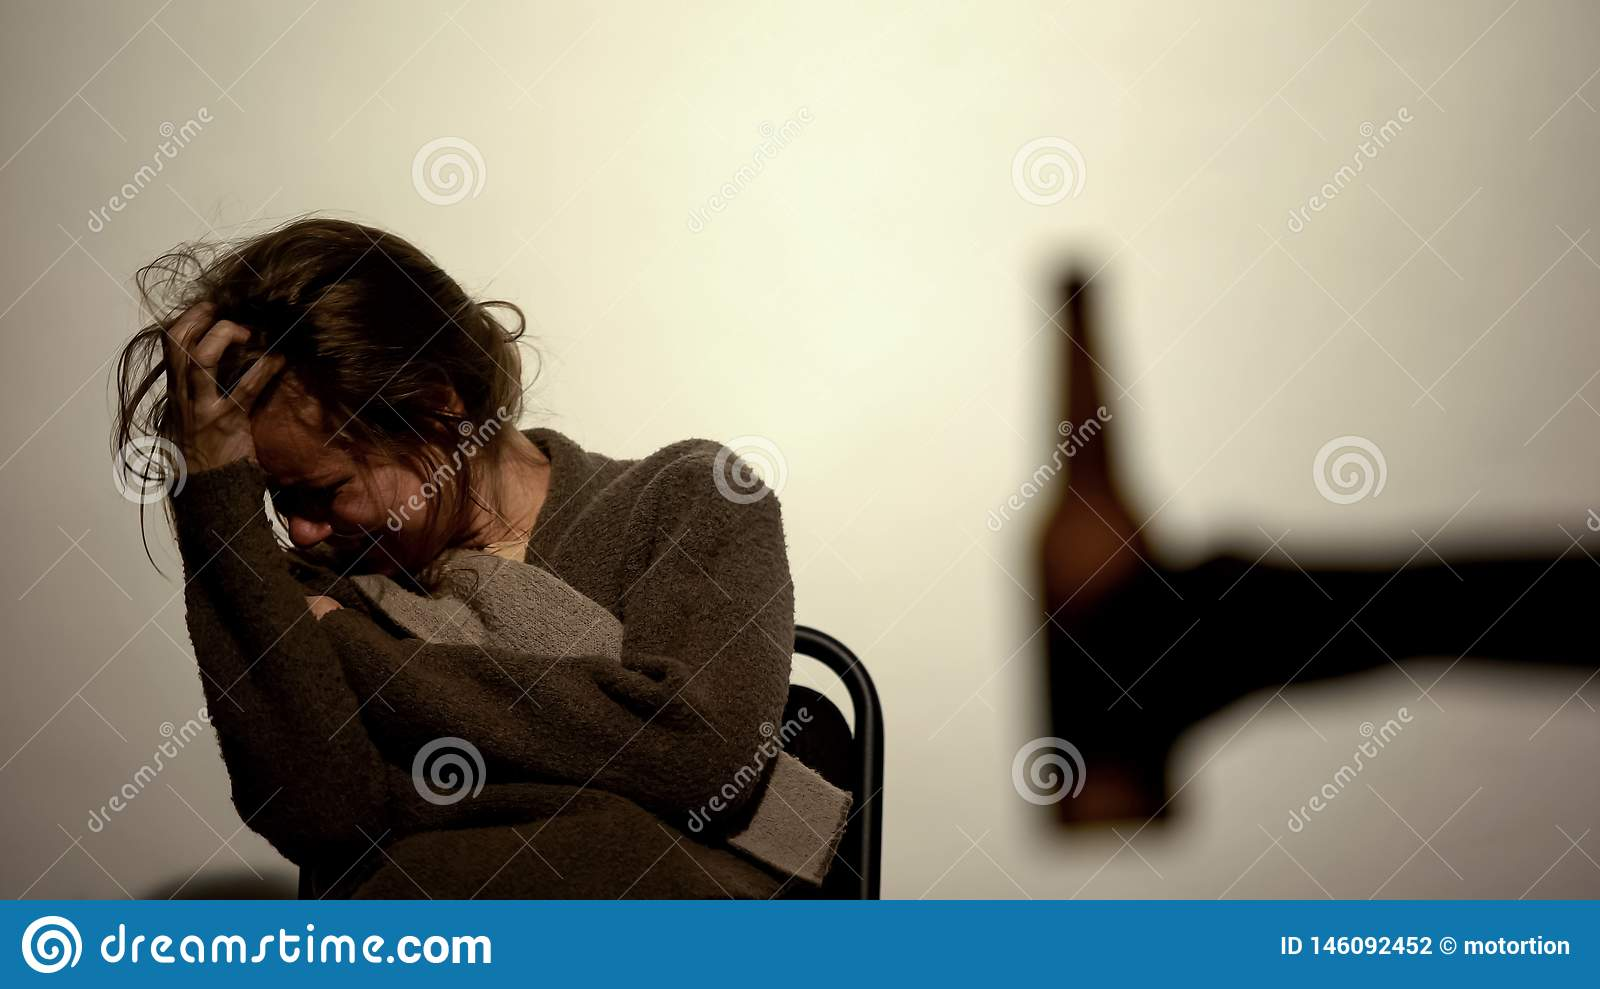 Hand showing bottle with beer alcohol addicted woman, rehabilitation, willpower